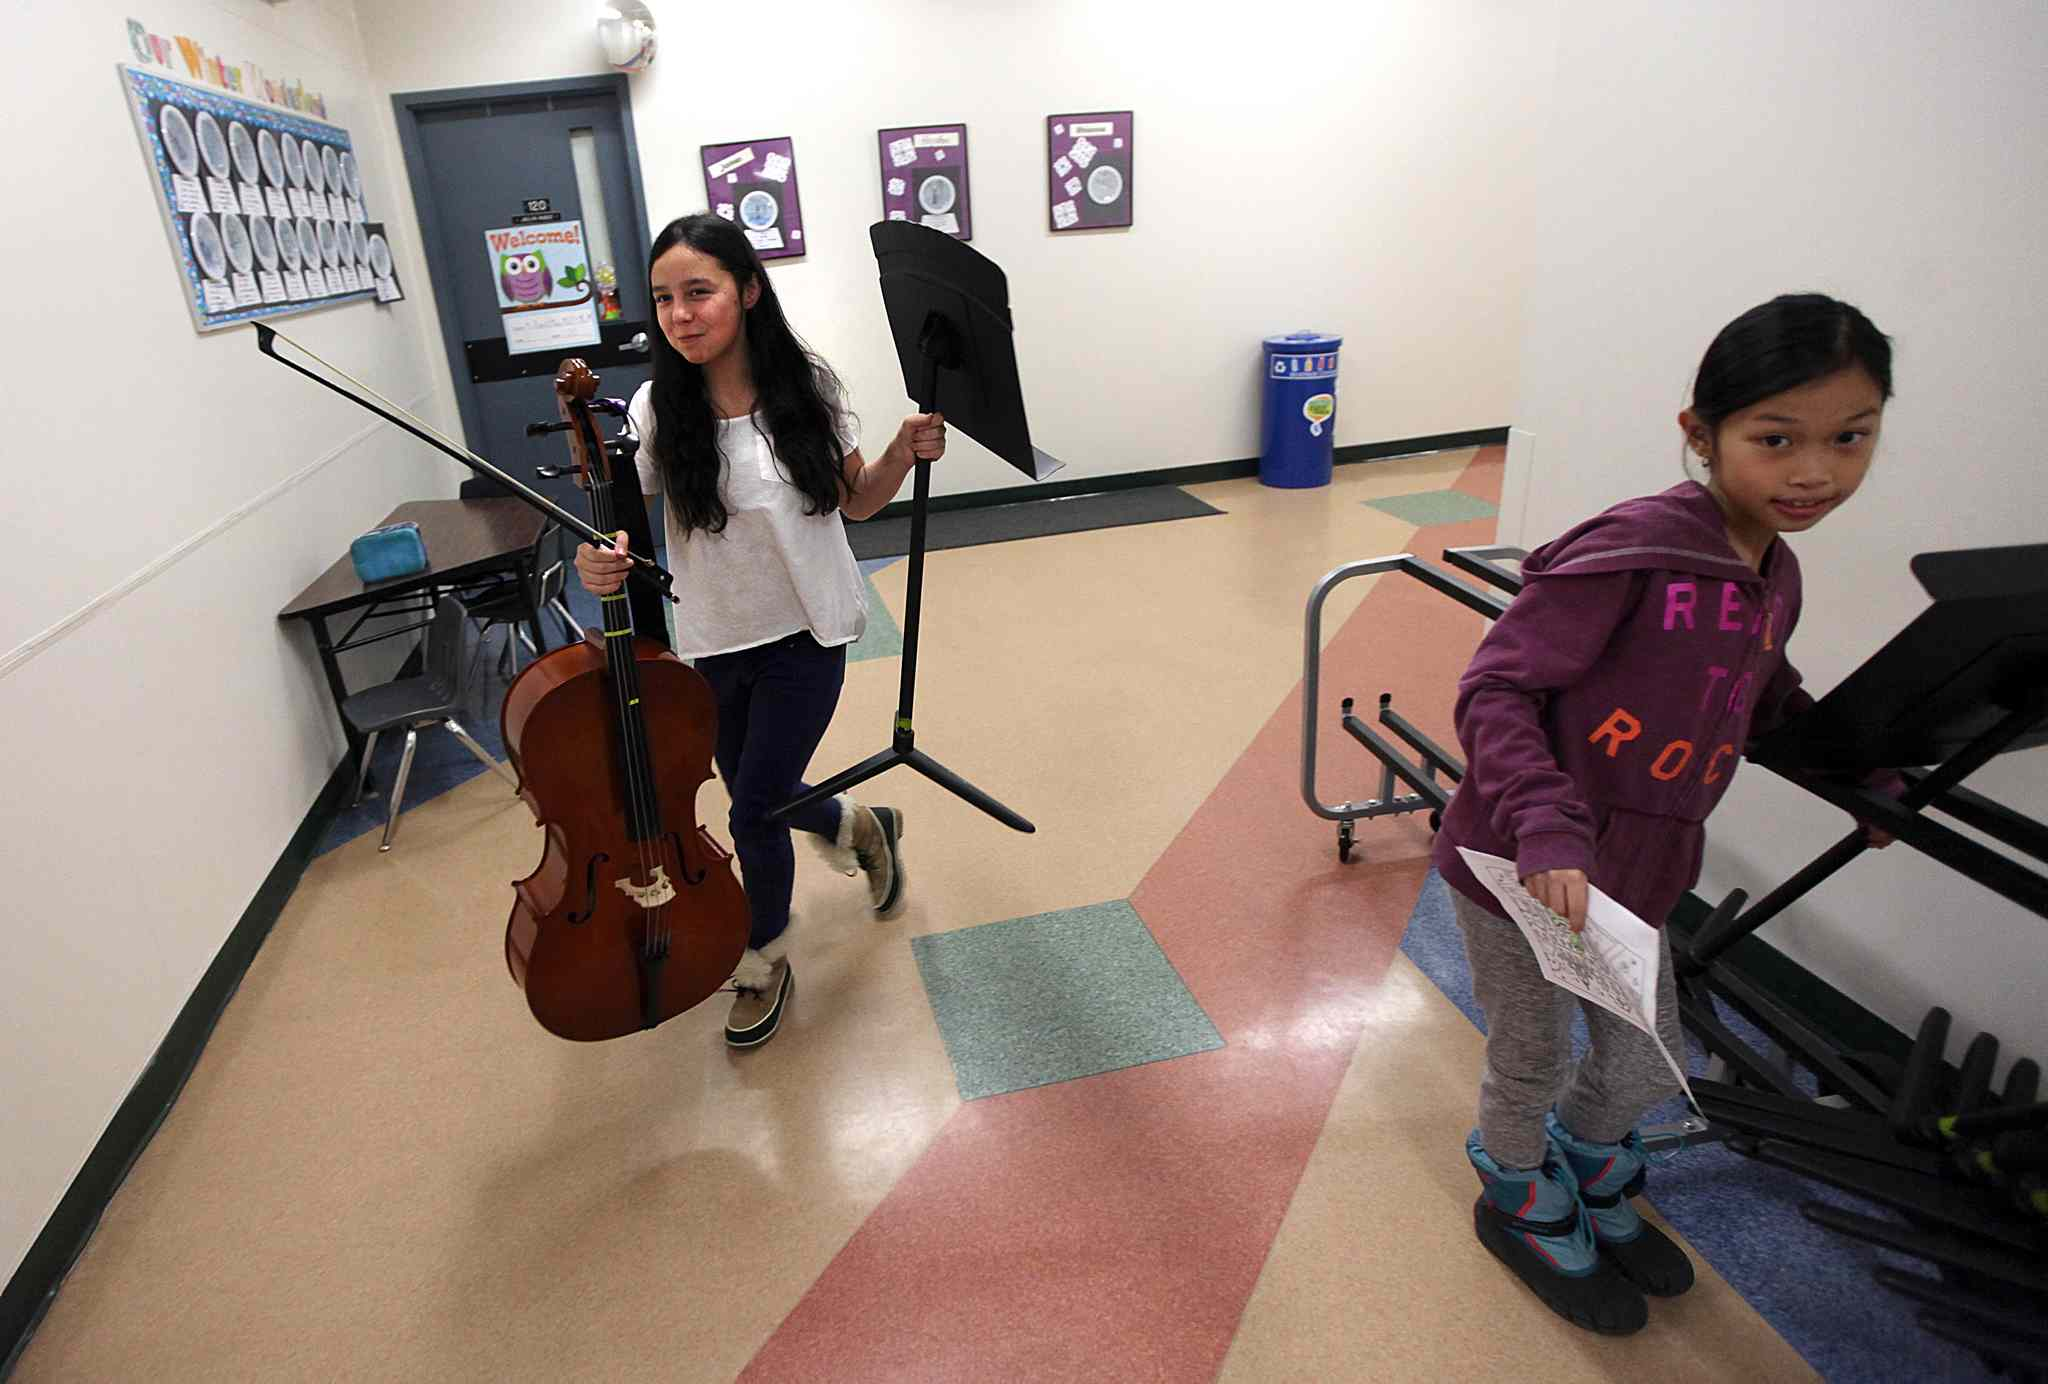 Cheyanne Sutherland, left, and Ehrica Demillo, right, head to rehearsal.